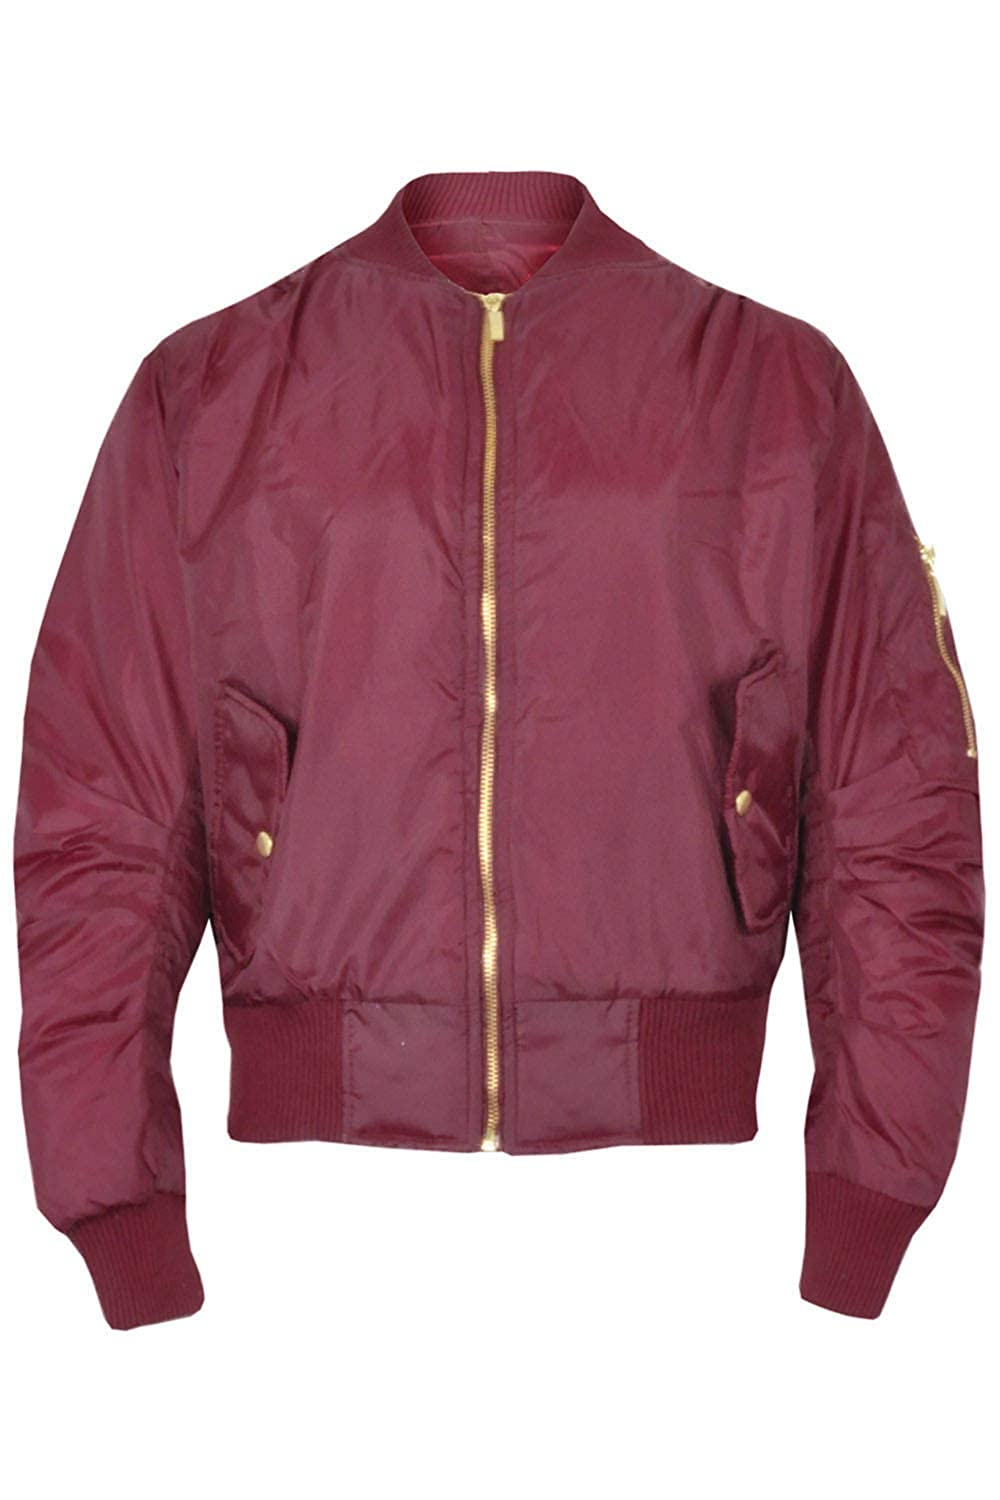 Kids Warm Fully Zipped Front 2 Button Pockets Long Sleeves Padded Quilted Jacket BE JEALOUS